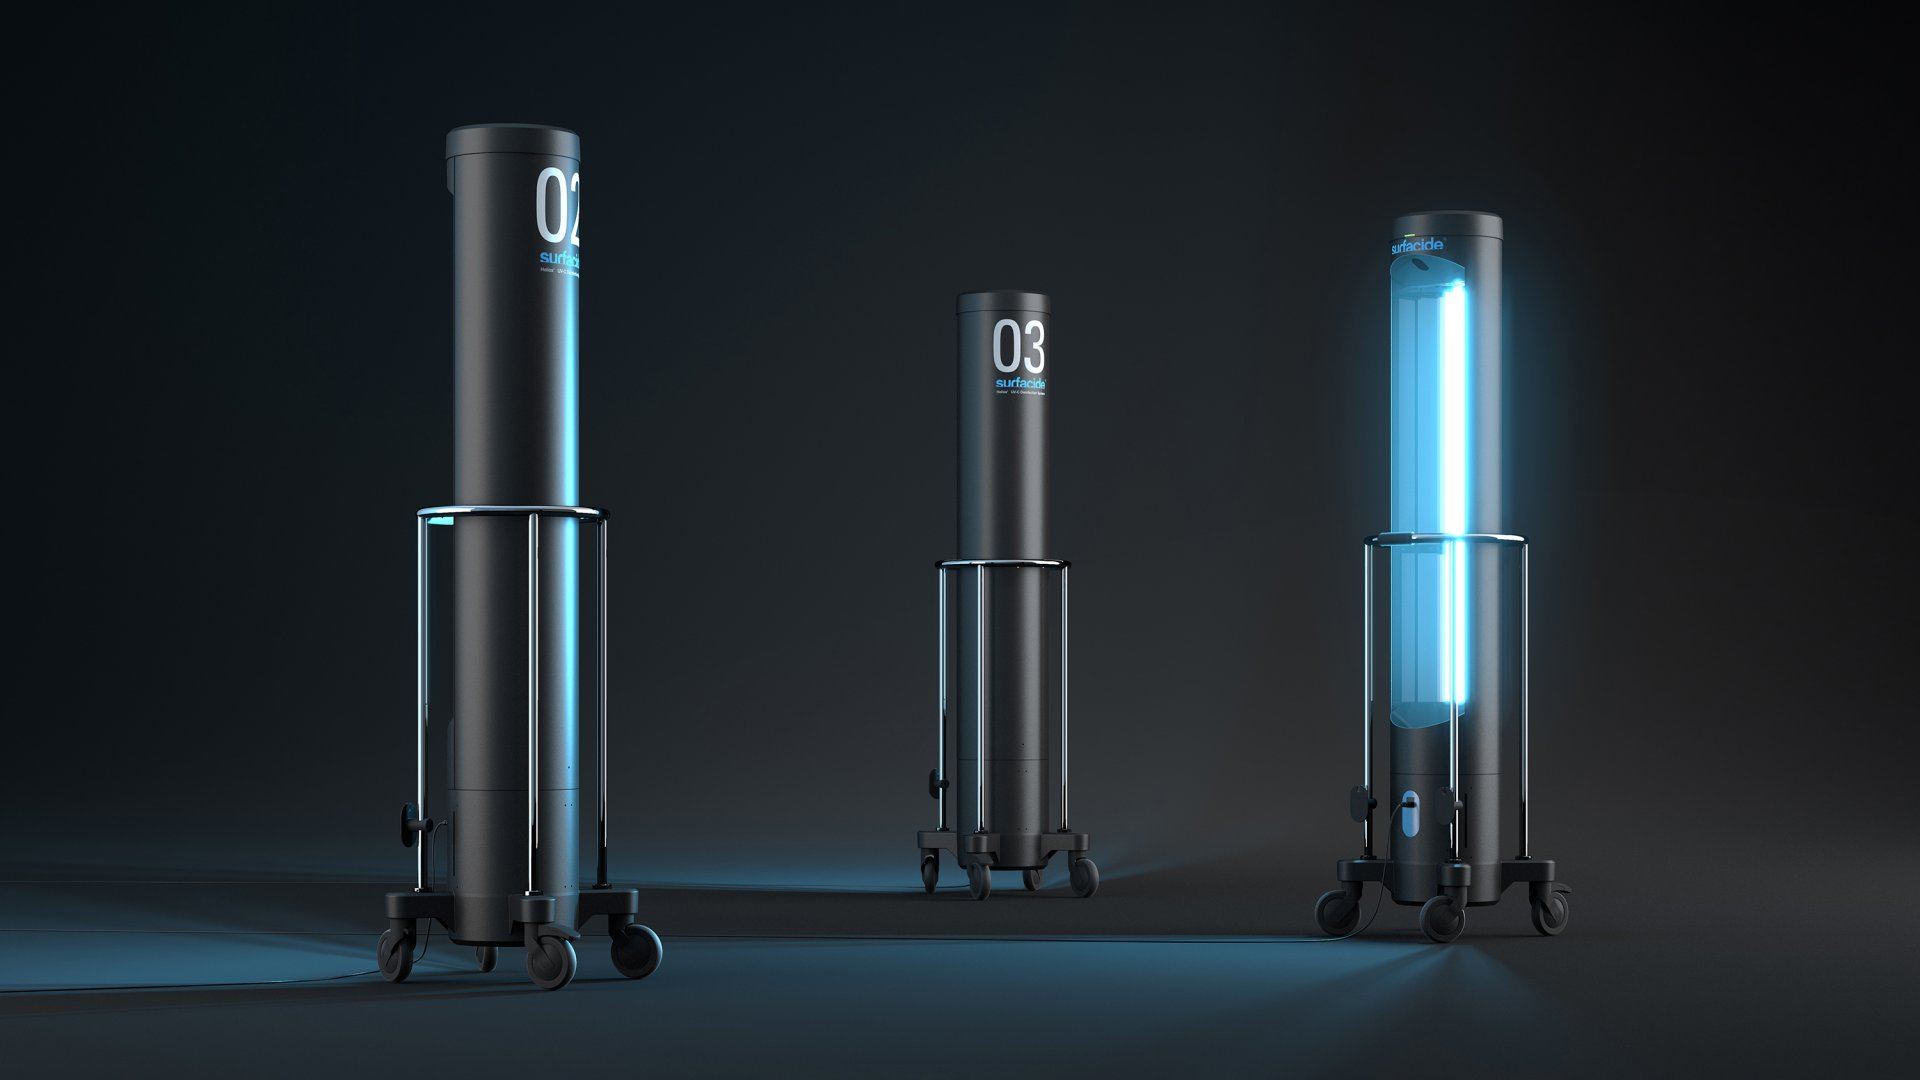 Surfacide's Helios System uses UV-C radiation to kill germs on surfaces.